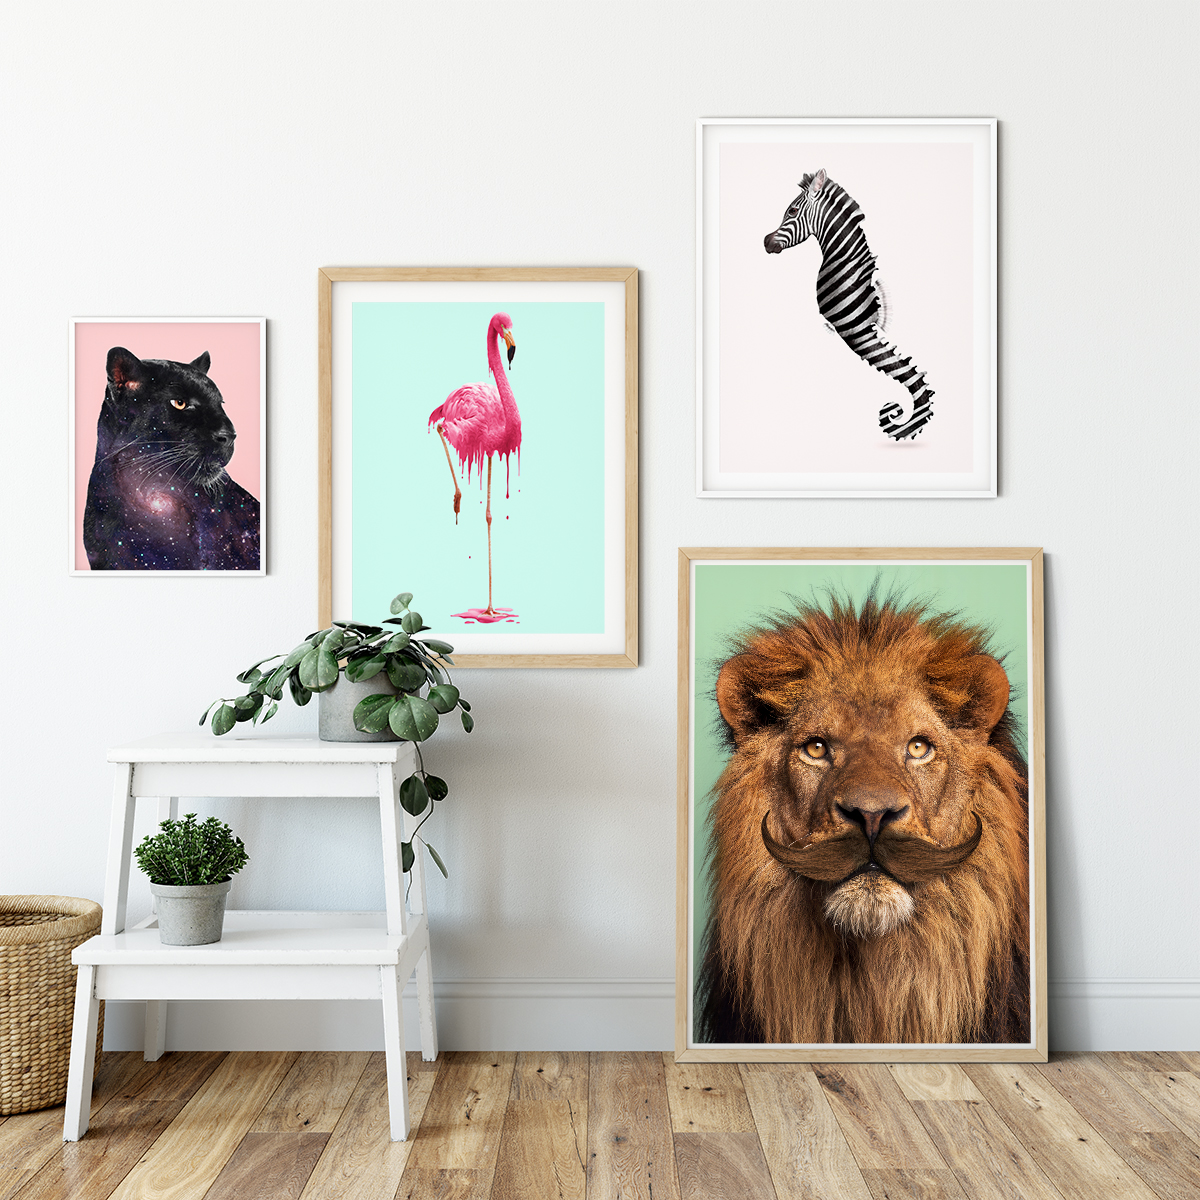 Wall Art - Art Prints, Framed Art Prints